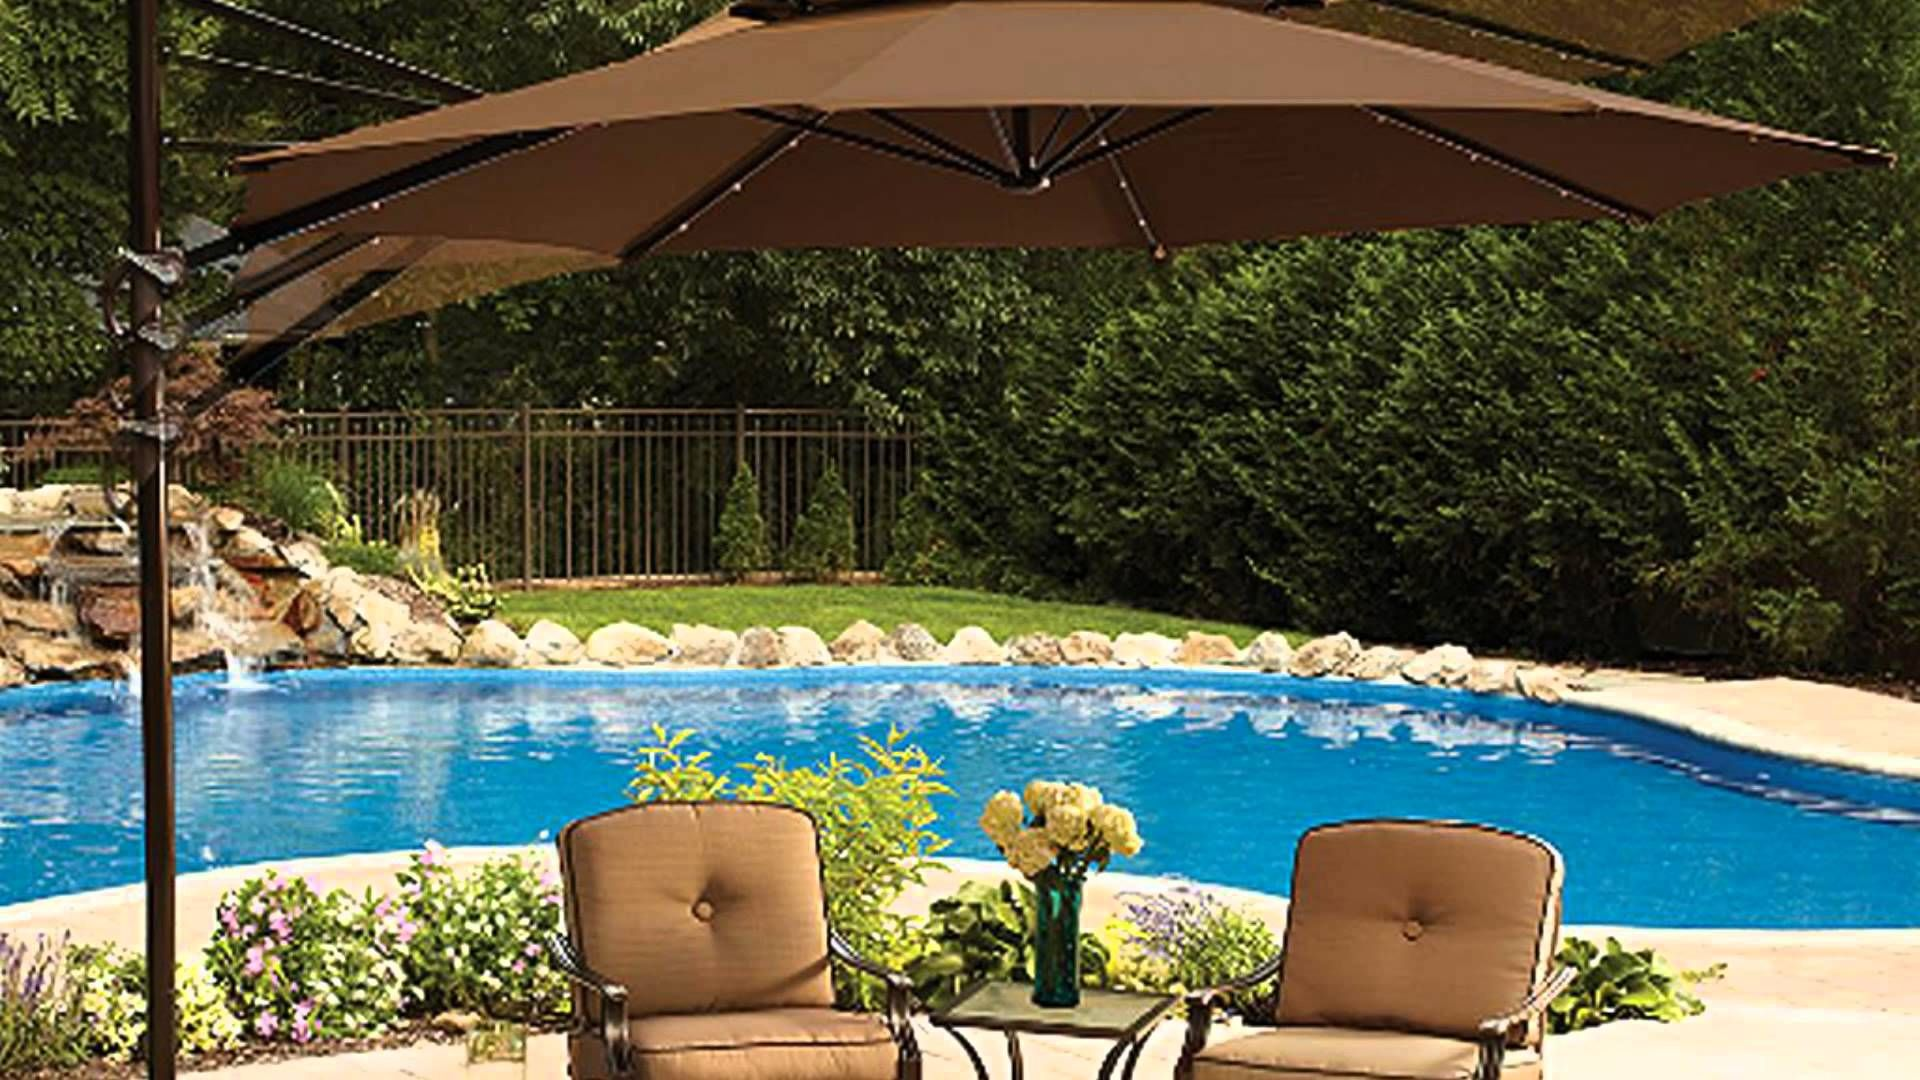 PatioSunUmbrellas is an online store that specializes in